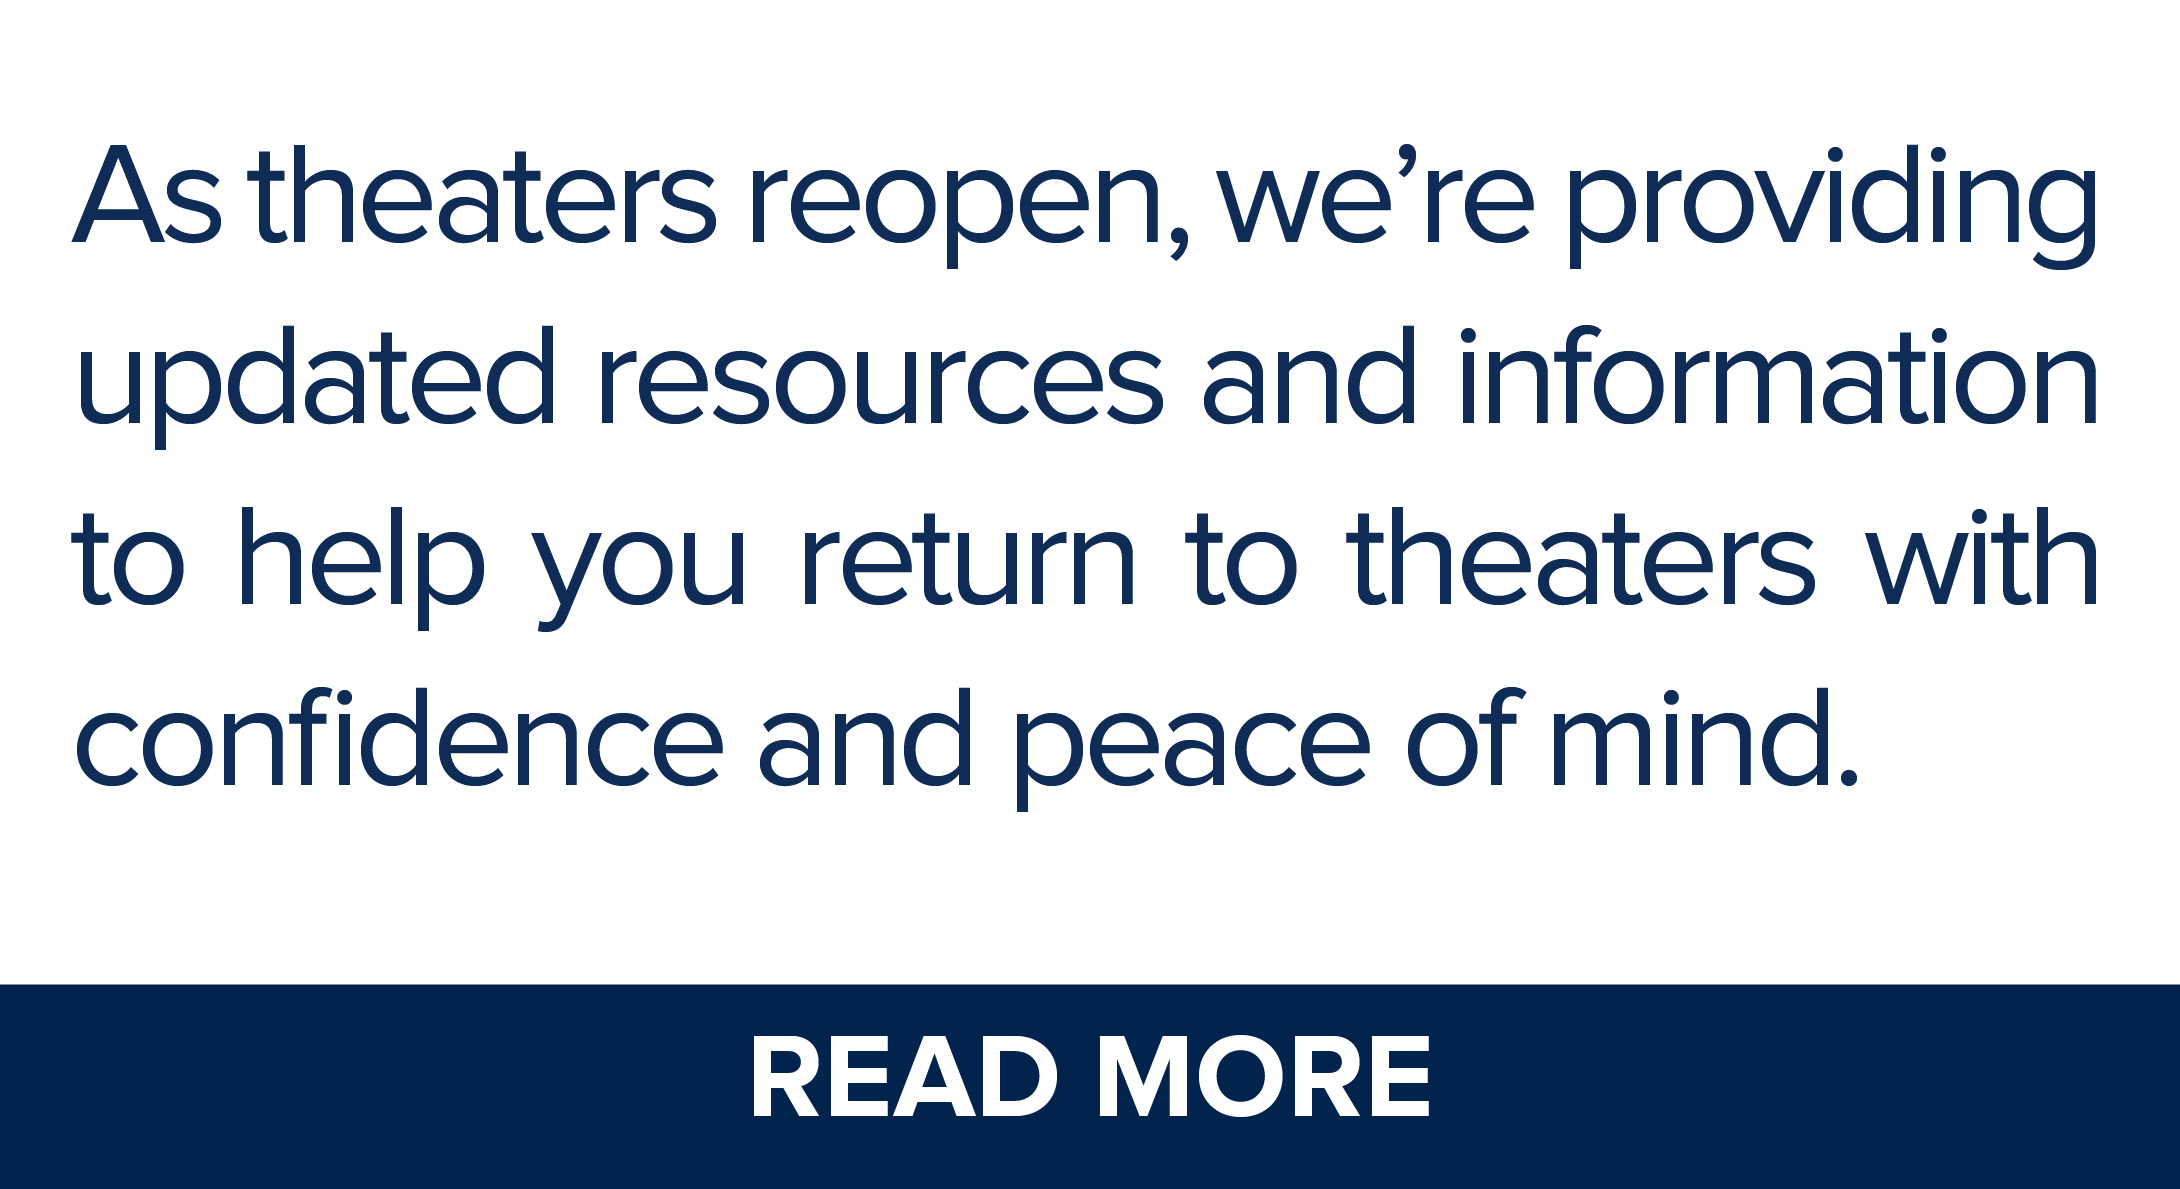 As theaters reopen, we're providing the most up-to-date resources and information to help you return to theaters with confidence and peace of mind.